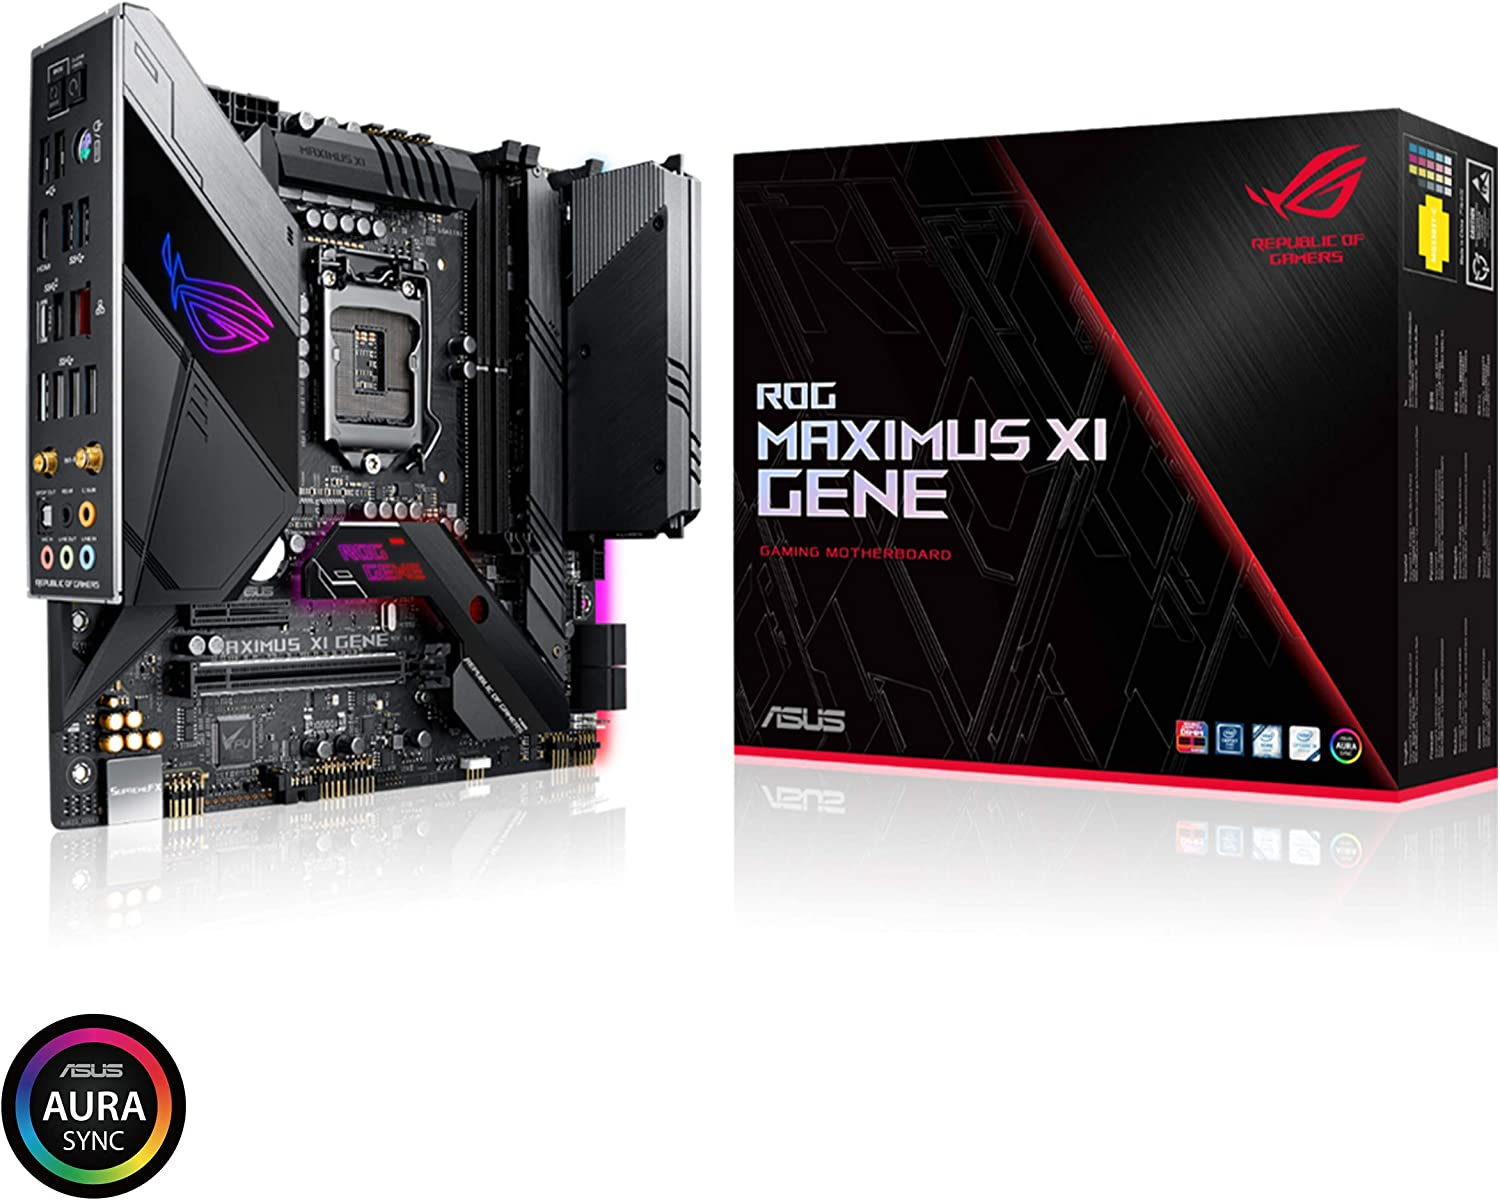 ASUS ROG Maximus Xl Gene Gaming Motherboard